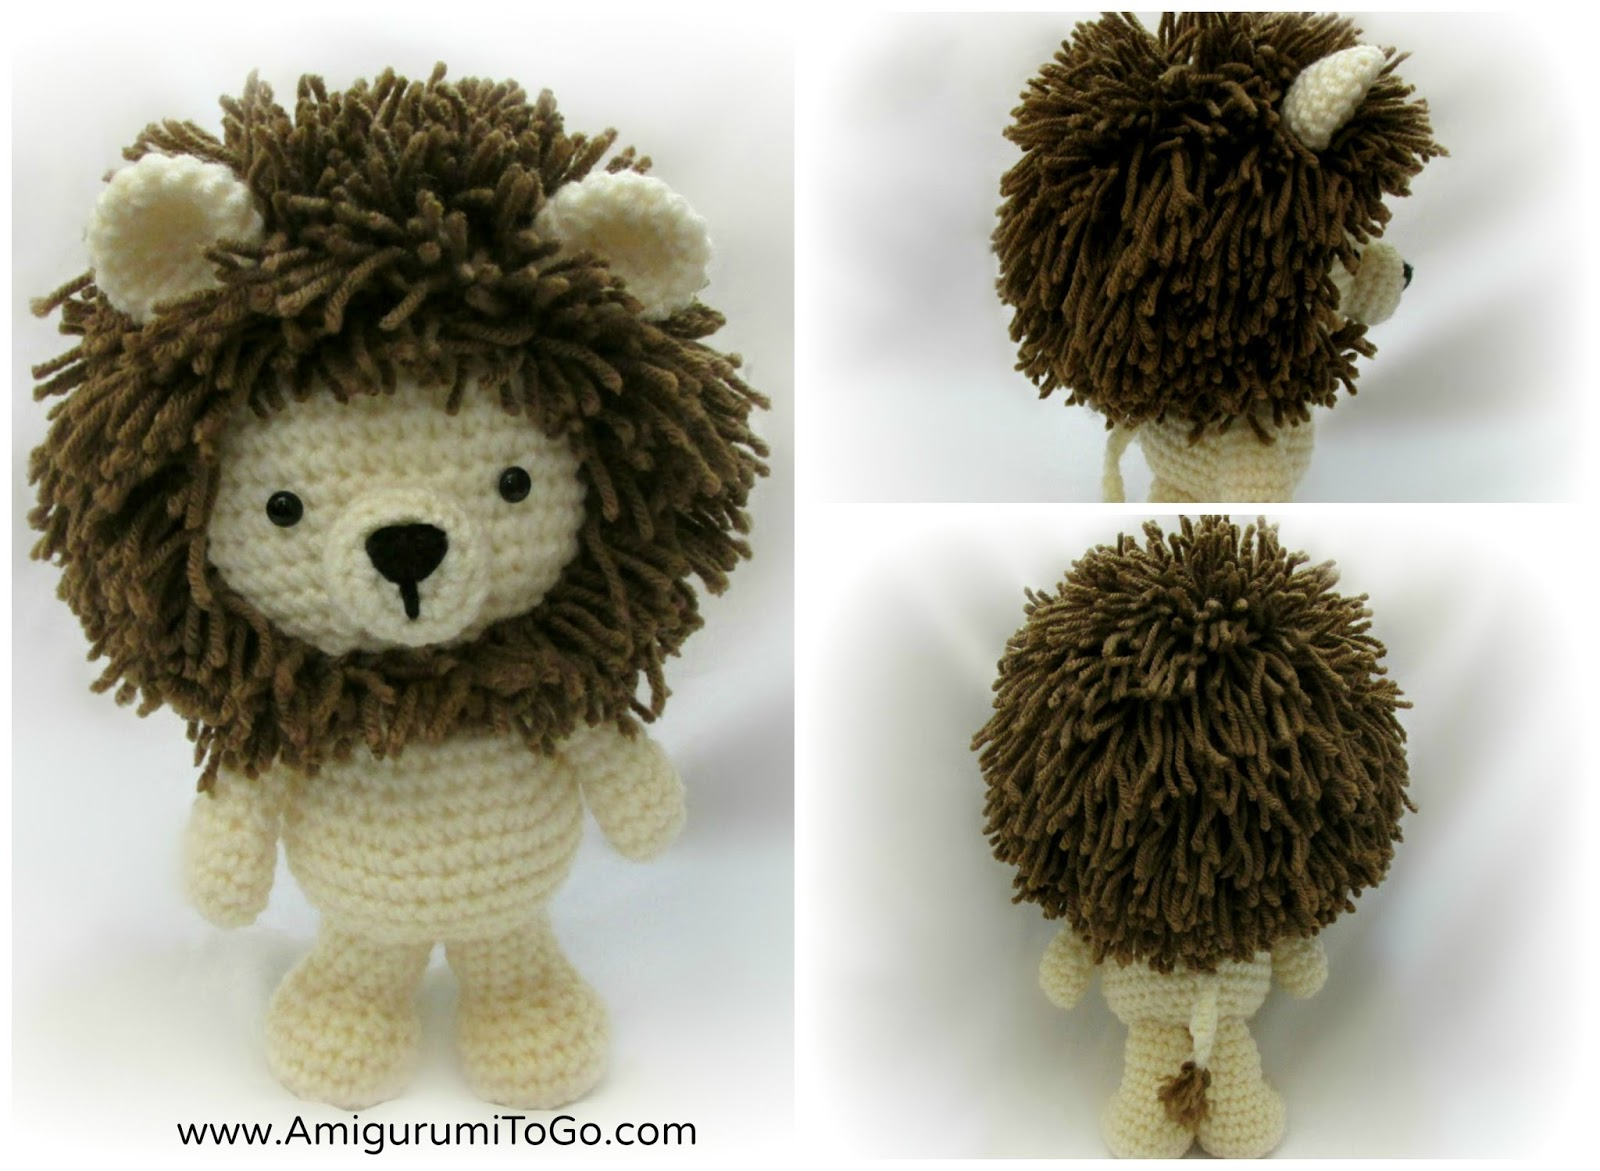 Amigurumi Lion Free : Little Bigfoot Lion 2014 ~ Amigurumi To Go